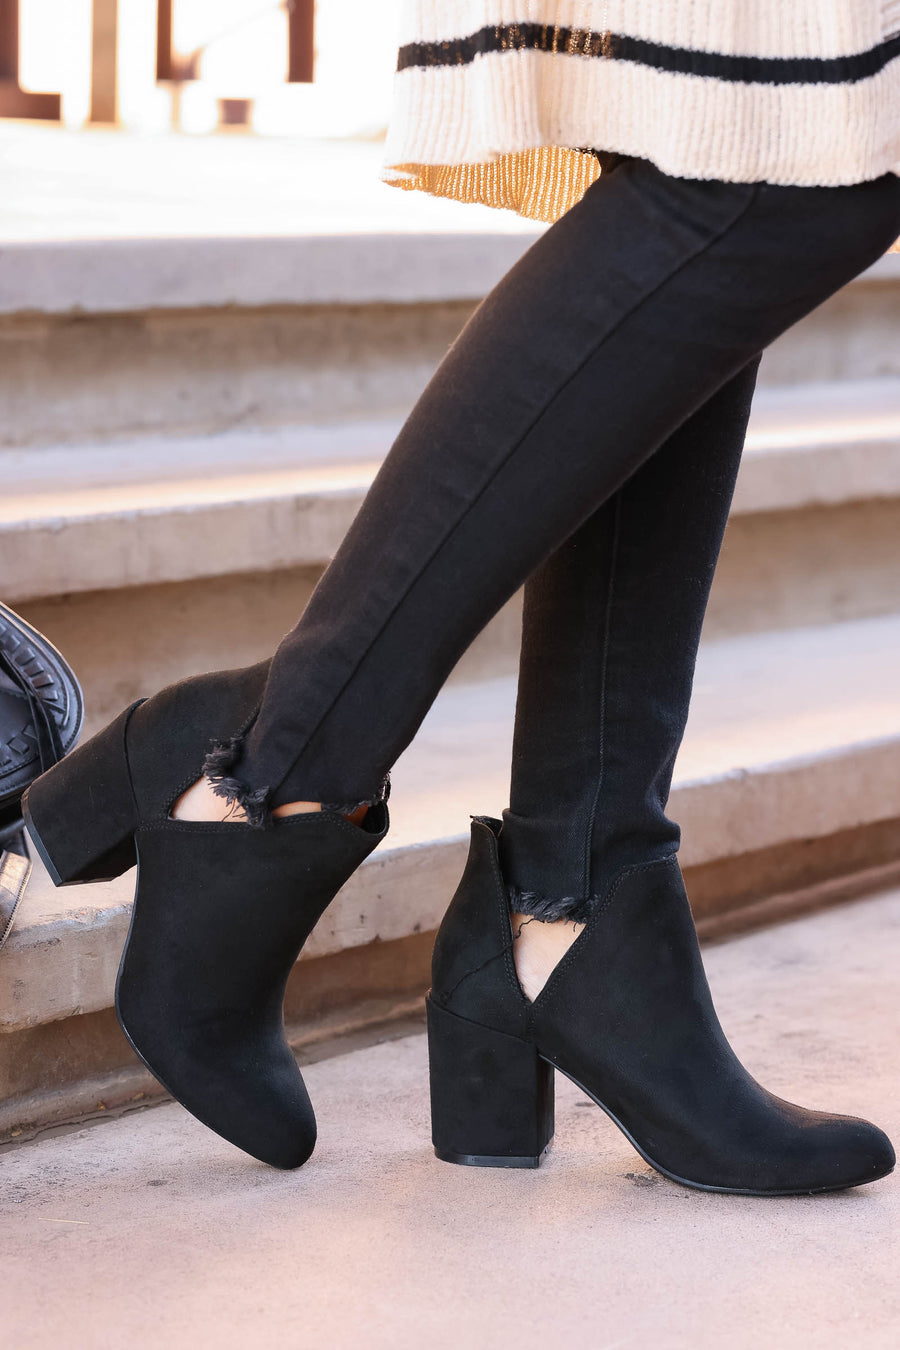 City Girl Booties - Black closet candy woemns trendy ankles boots with side slit 1